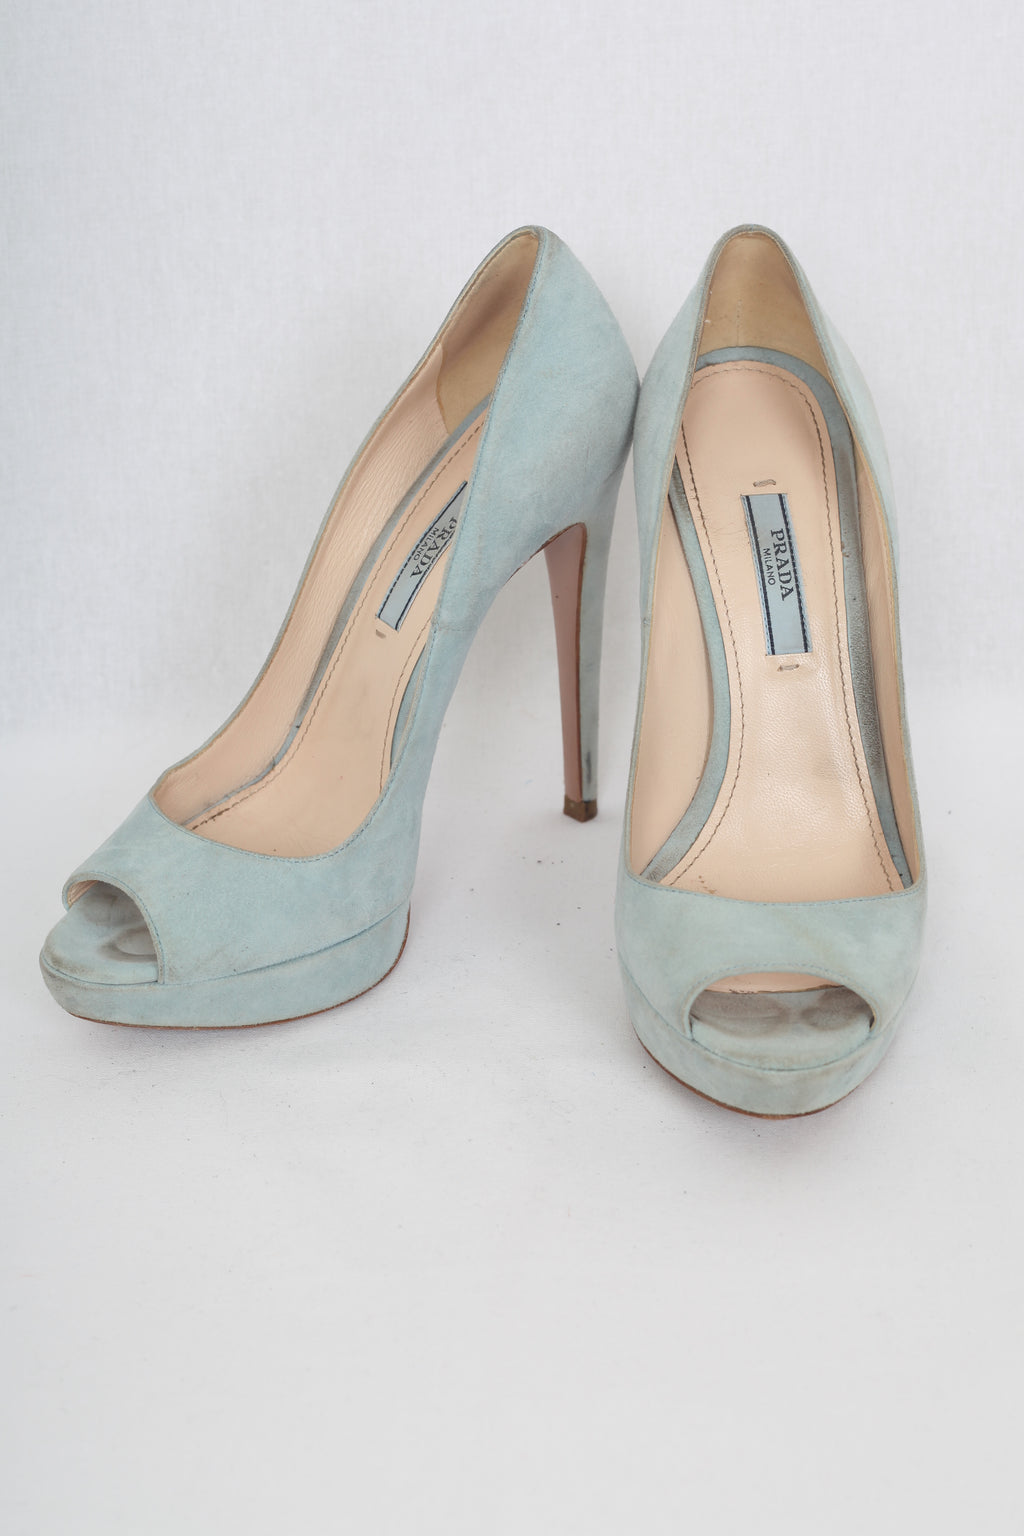 Prada Pumps - 37